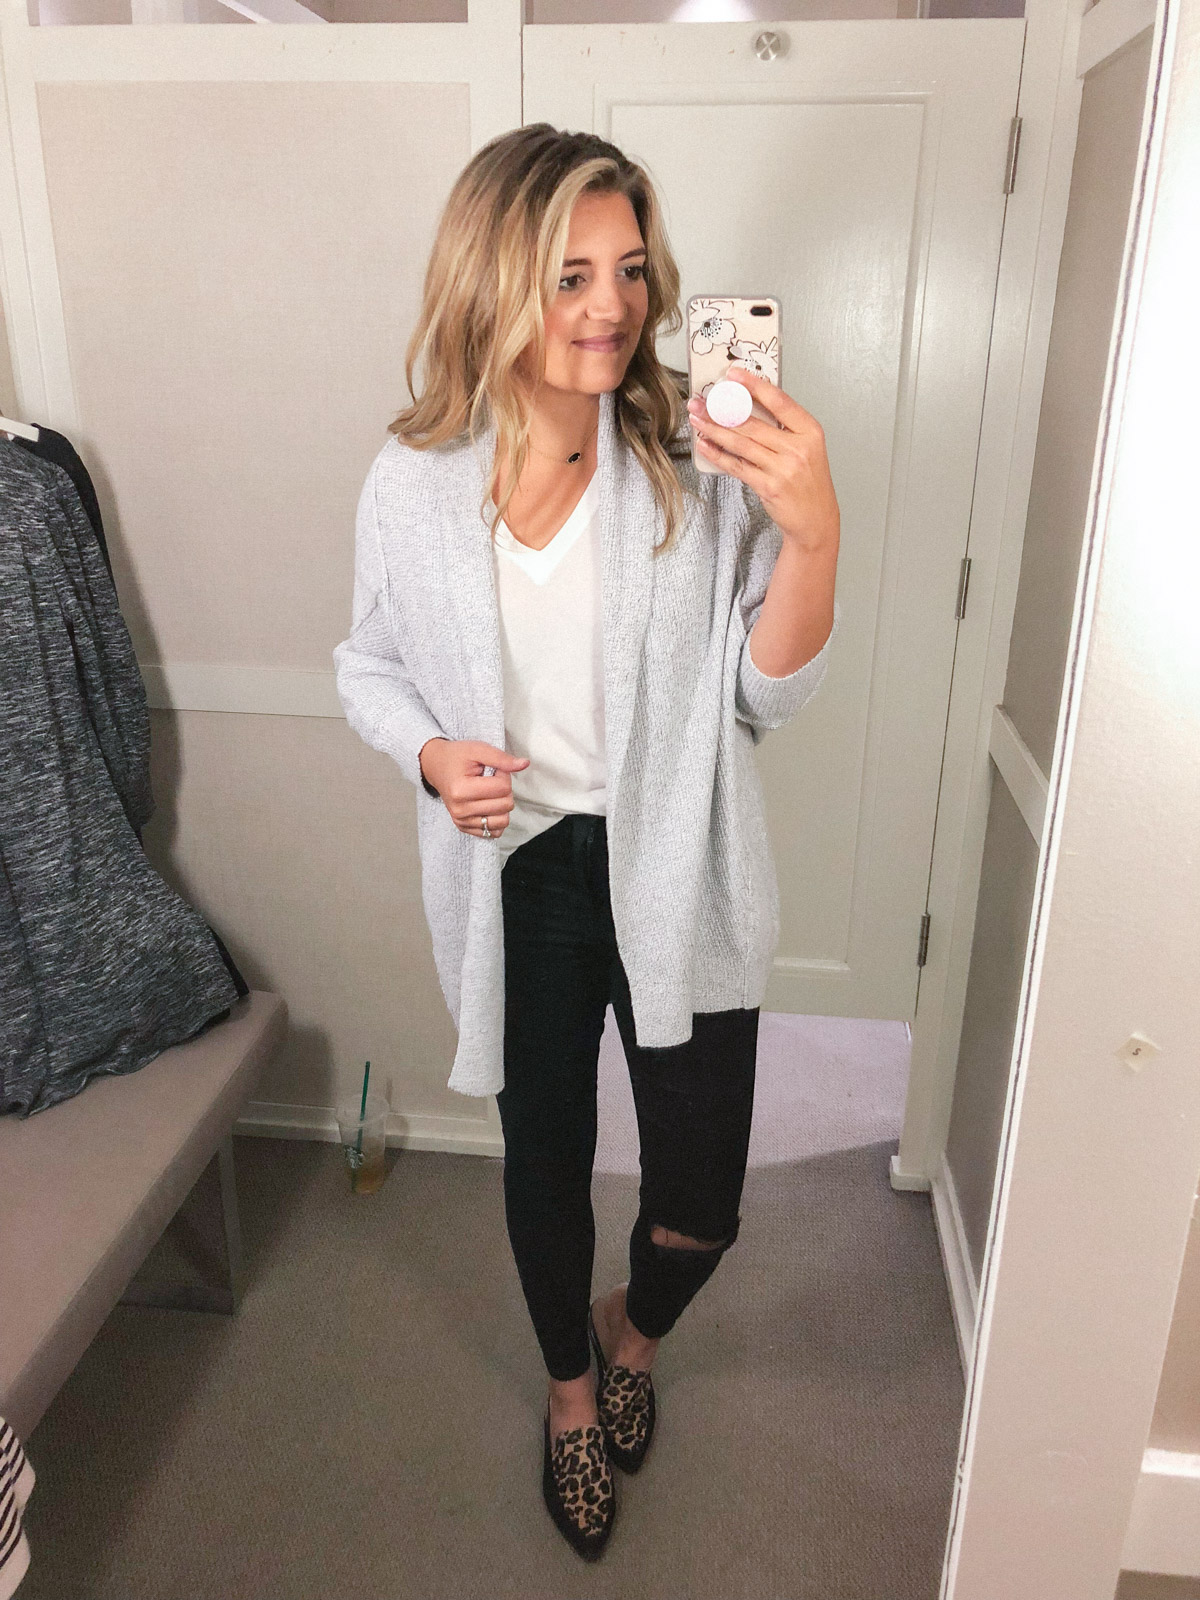 lou & grey fall reviews | Huge fall try-on session! See my picks from Nordstrom, Shopbop, Loft, and H&M! bylaurenm.com